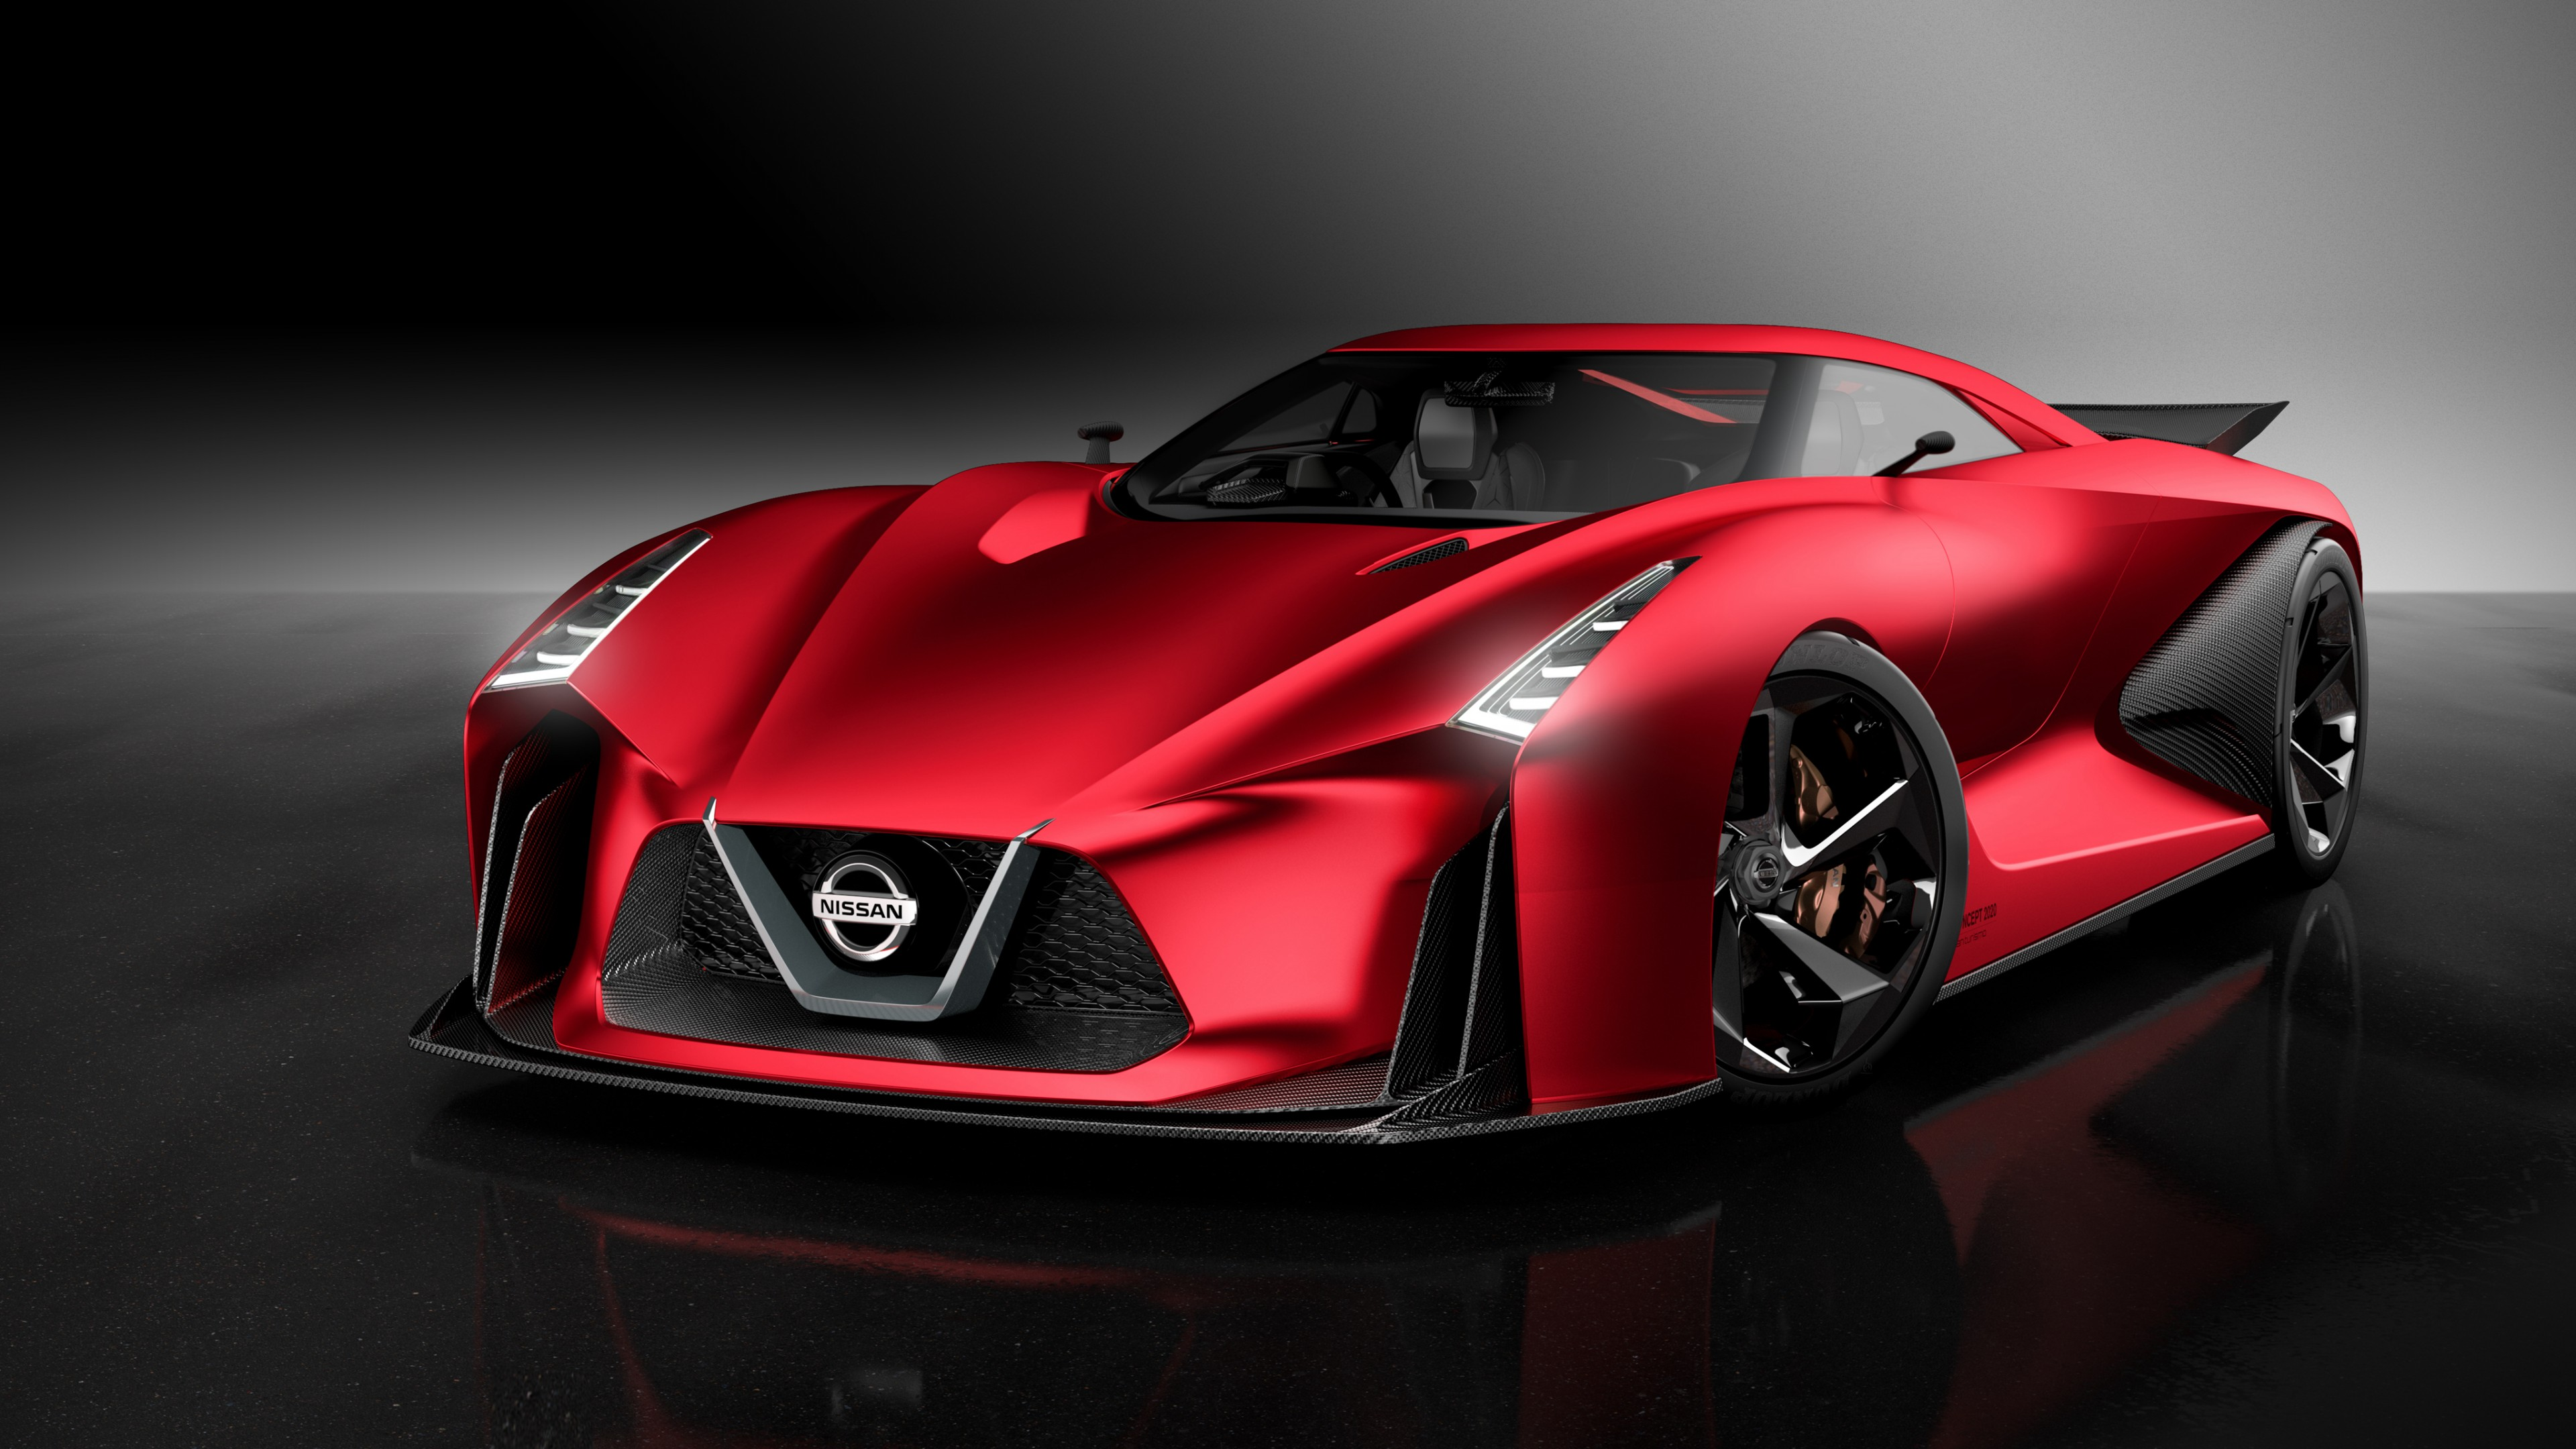 Wallpaper Nissan 2020 Vision Gran Turismo Red Concept Nissan Supercar Luxury Cars Sports Car Speed Test Drive Cars Bikes 7339